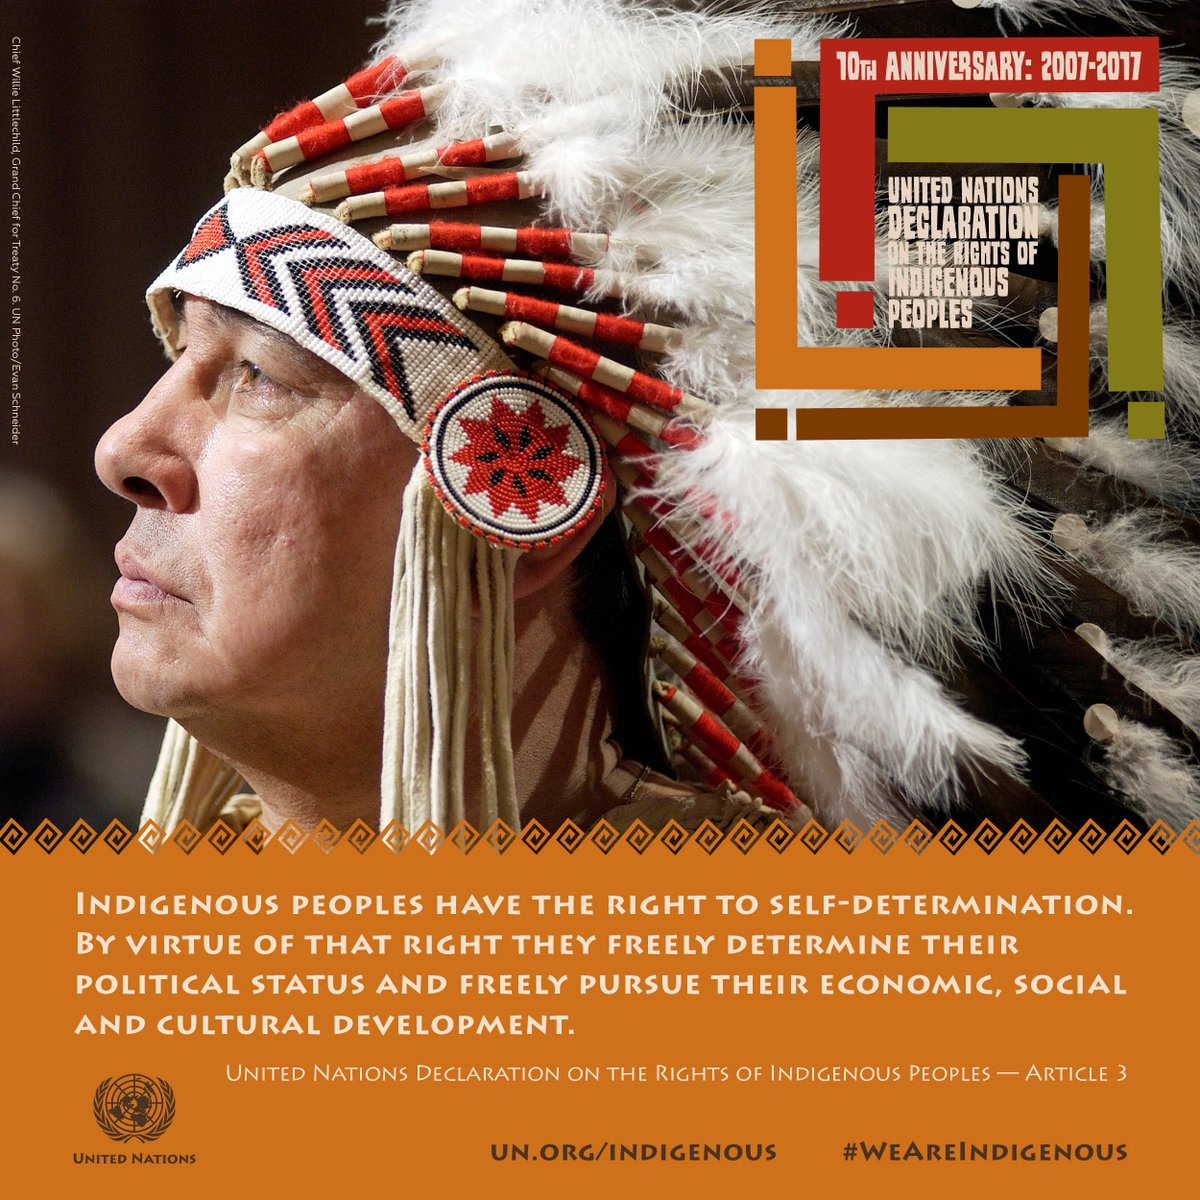 United Nations Declaration on the rights of indigenous peoples poster